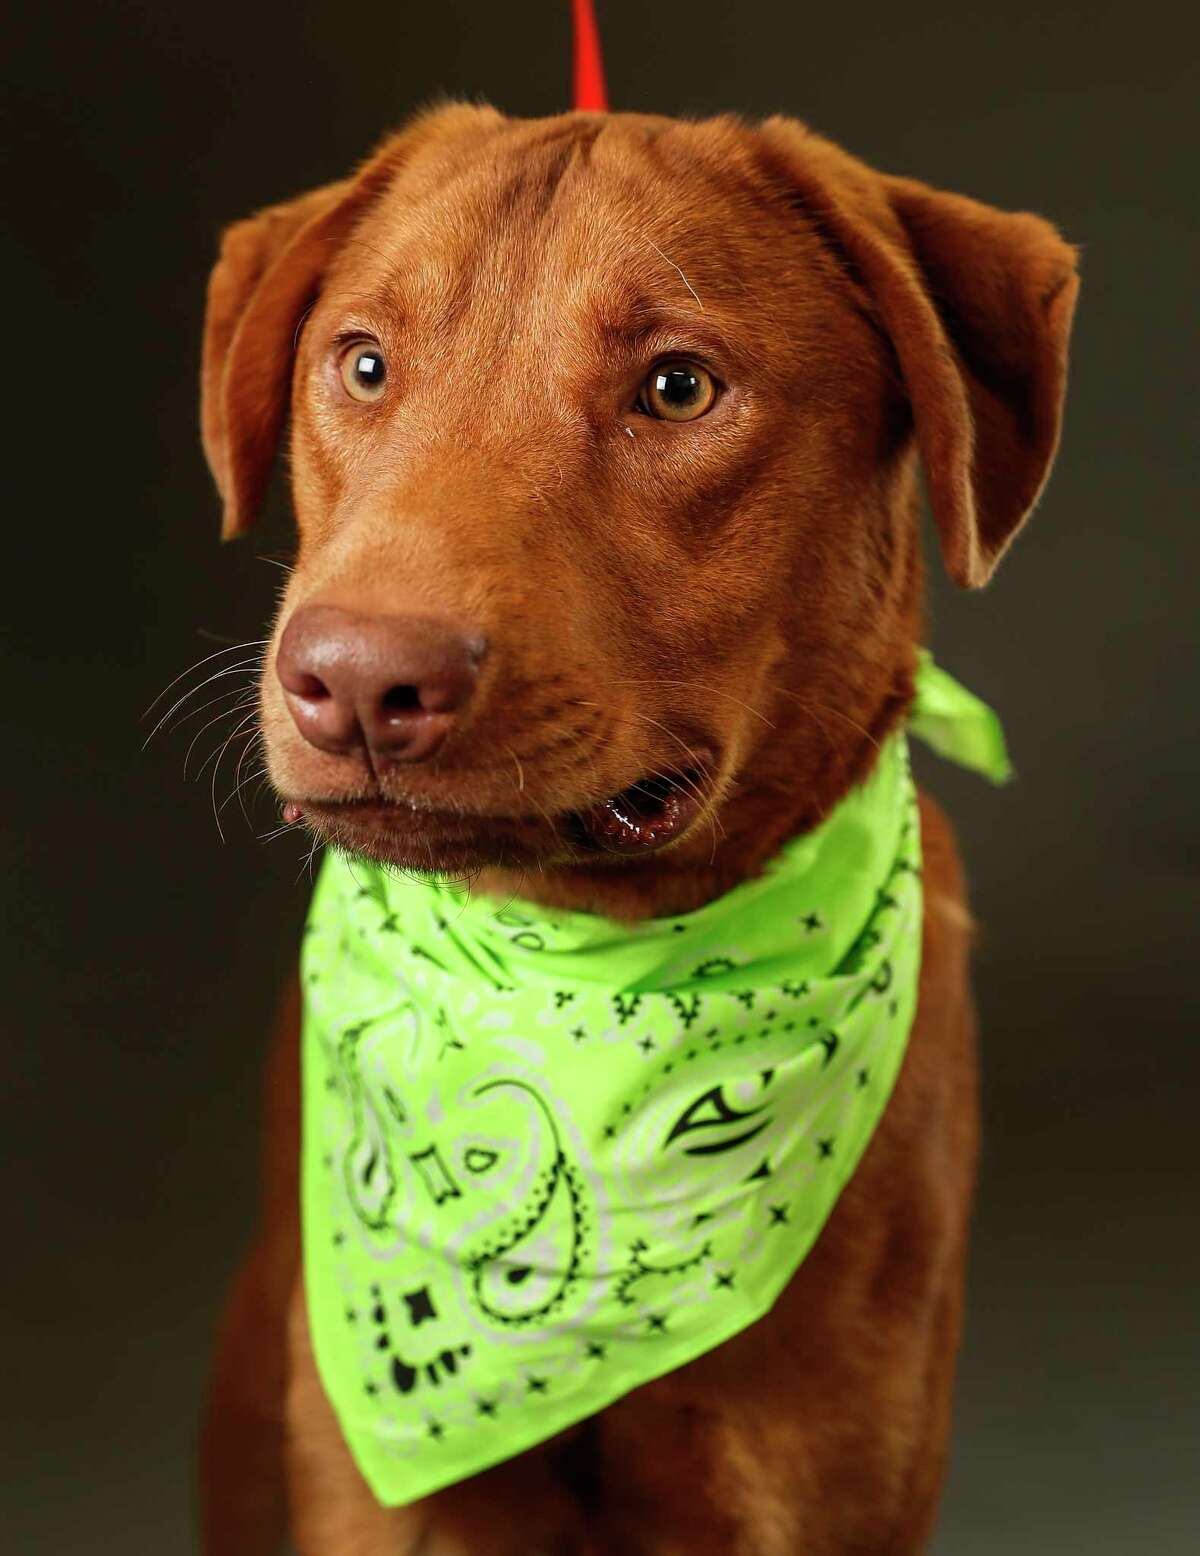 Cali is a male, Labrador Retriever mix, unknown age and is ready to be adopted from Harris County Animal Shelter. (Animal ID: A531453) Photographed Tuesday, April 30, 2019, in Houston. Cali came into the shelter as a stray, but was microchipped and wearing a collar. Attempts to find his owner failed, but this dog knows how to sit and shake hands. He is a gentle and loving dog.